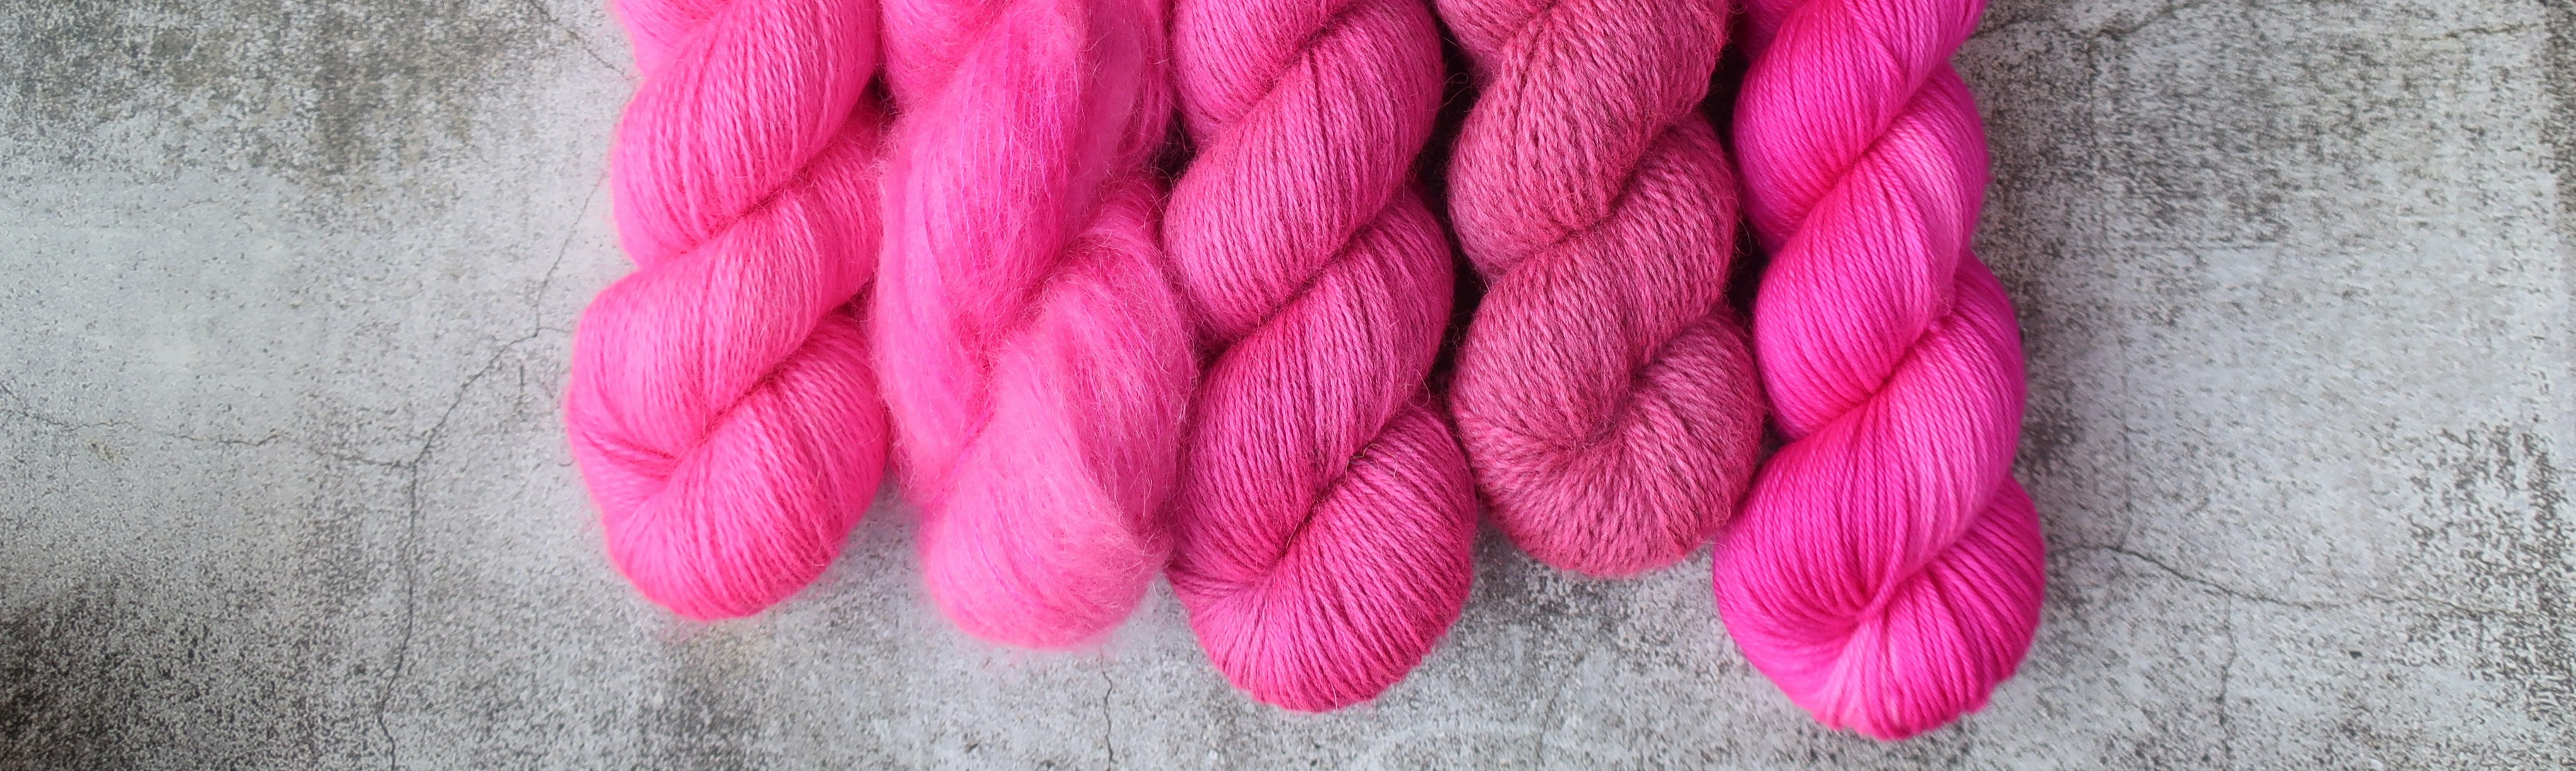 Five yarn bases in the neon pink colourway Rebelling Against Suburbia by Countess Ablaze